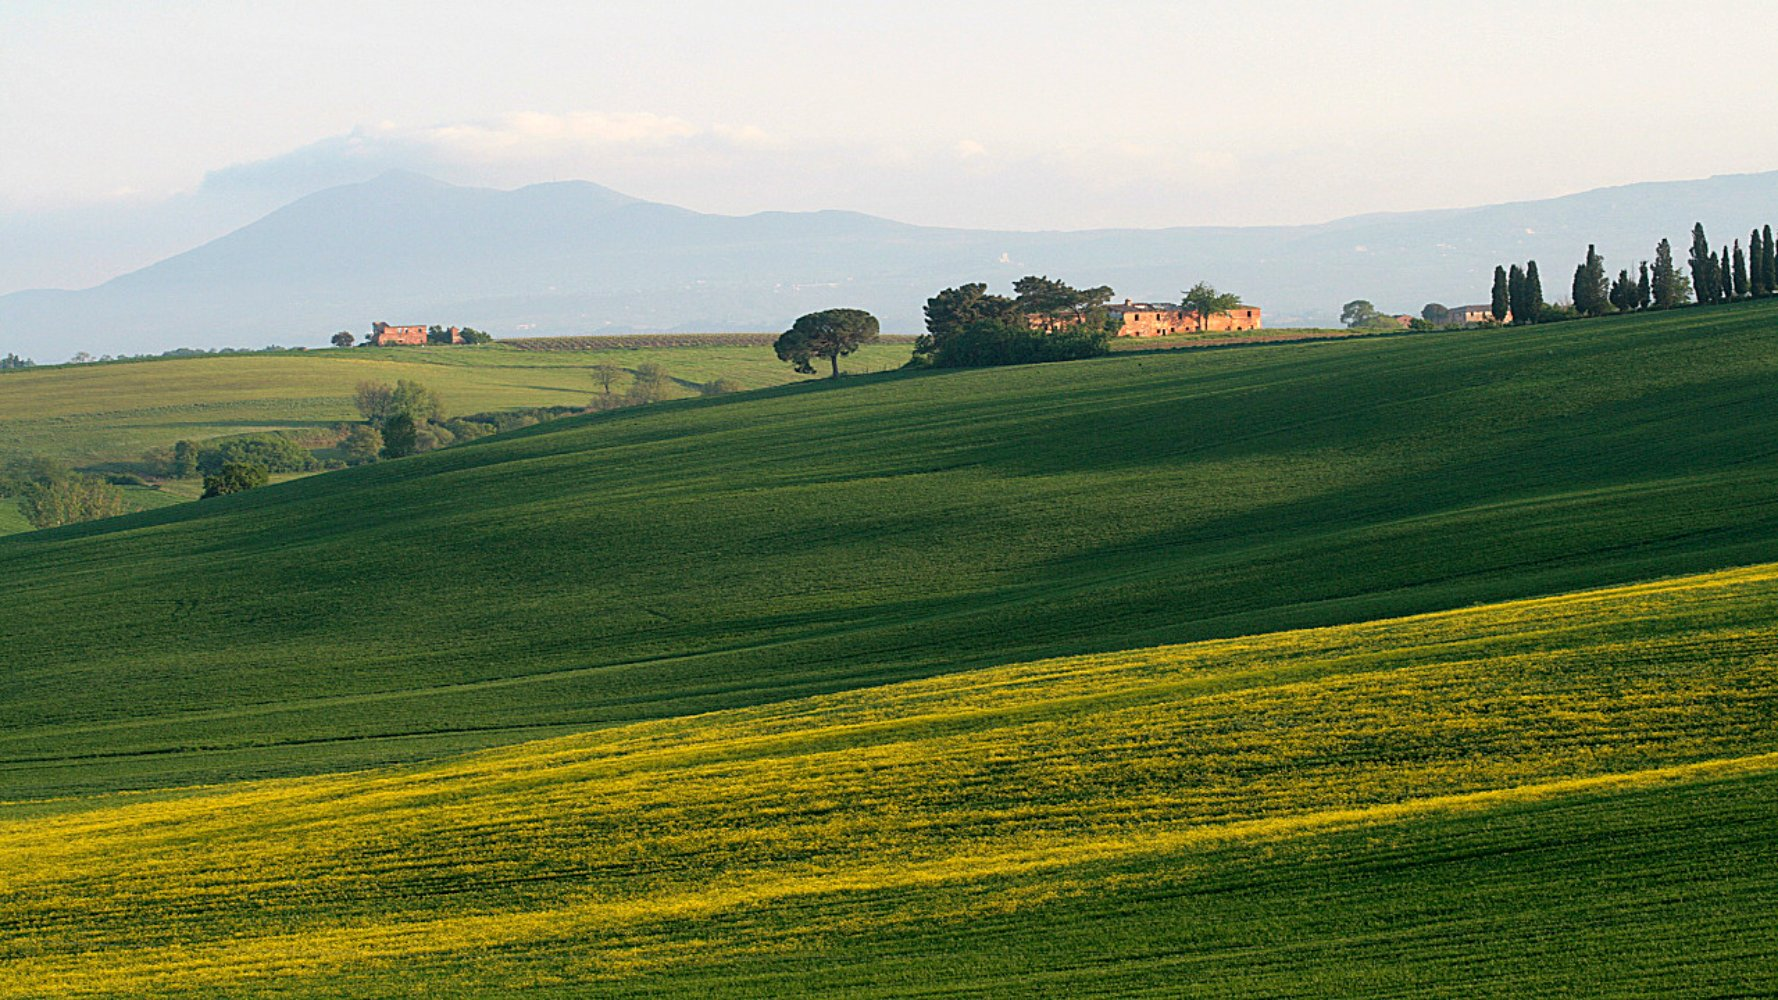 Valiano in Montepulciano, Valdichiana countryside